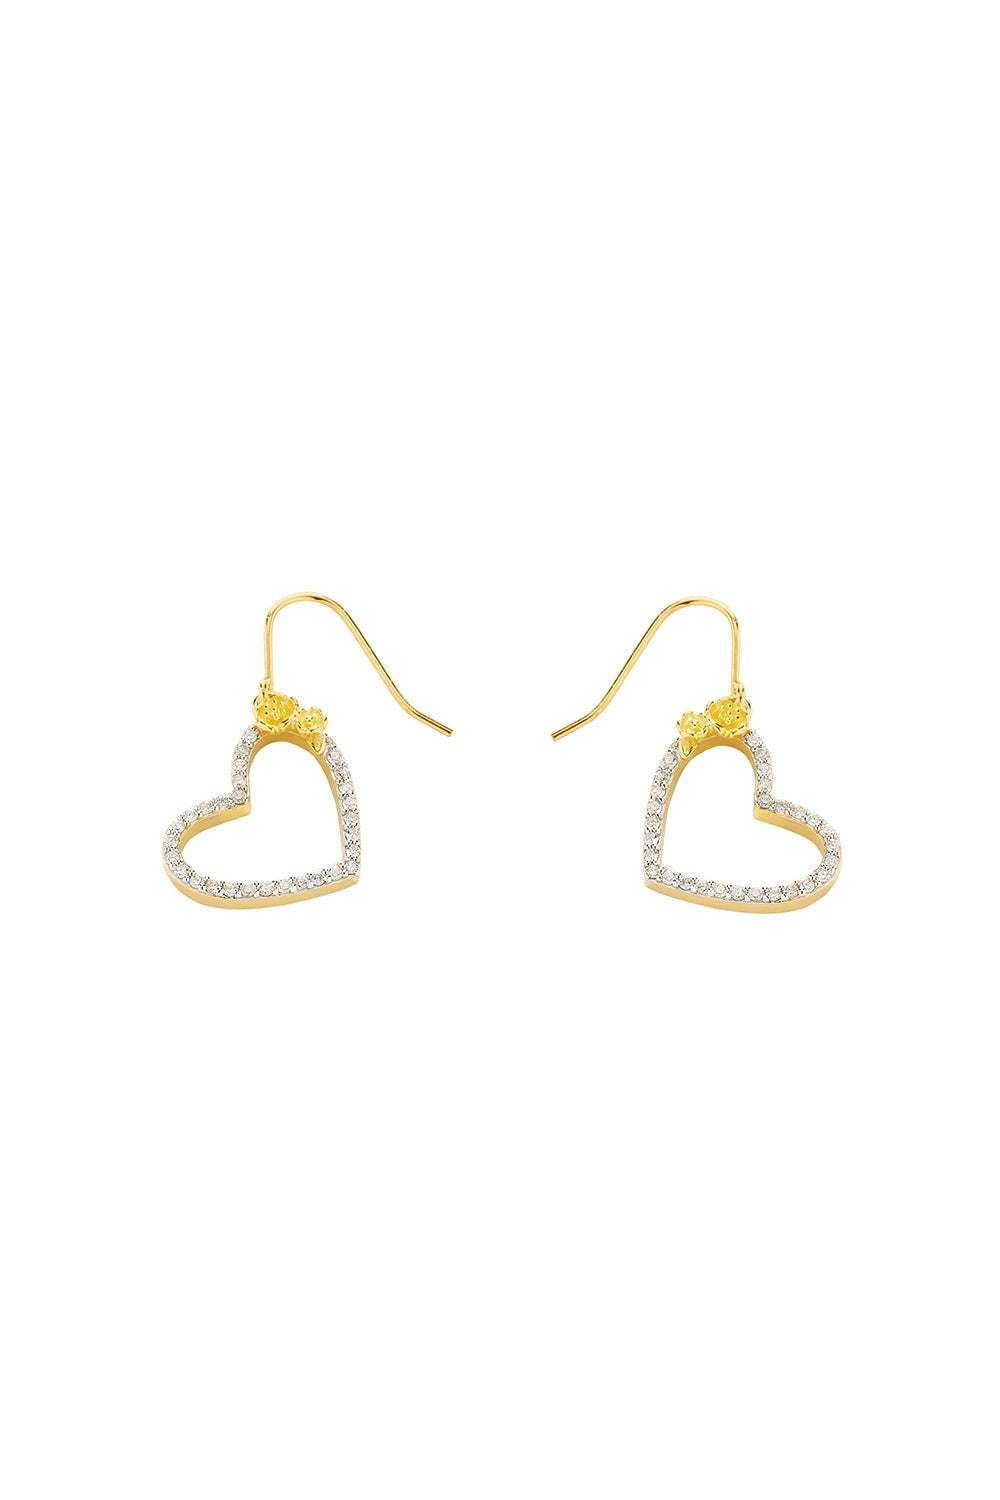 Diamond Botanical Heart Earring Gold, .50ct Diamond